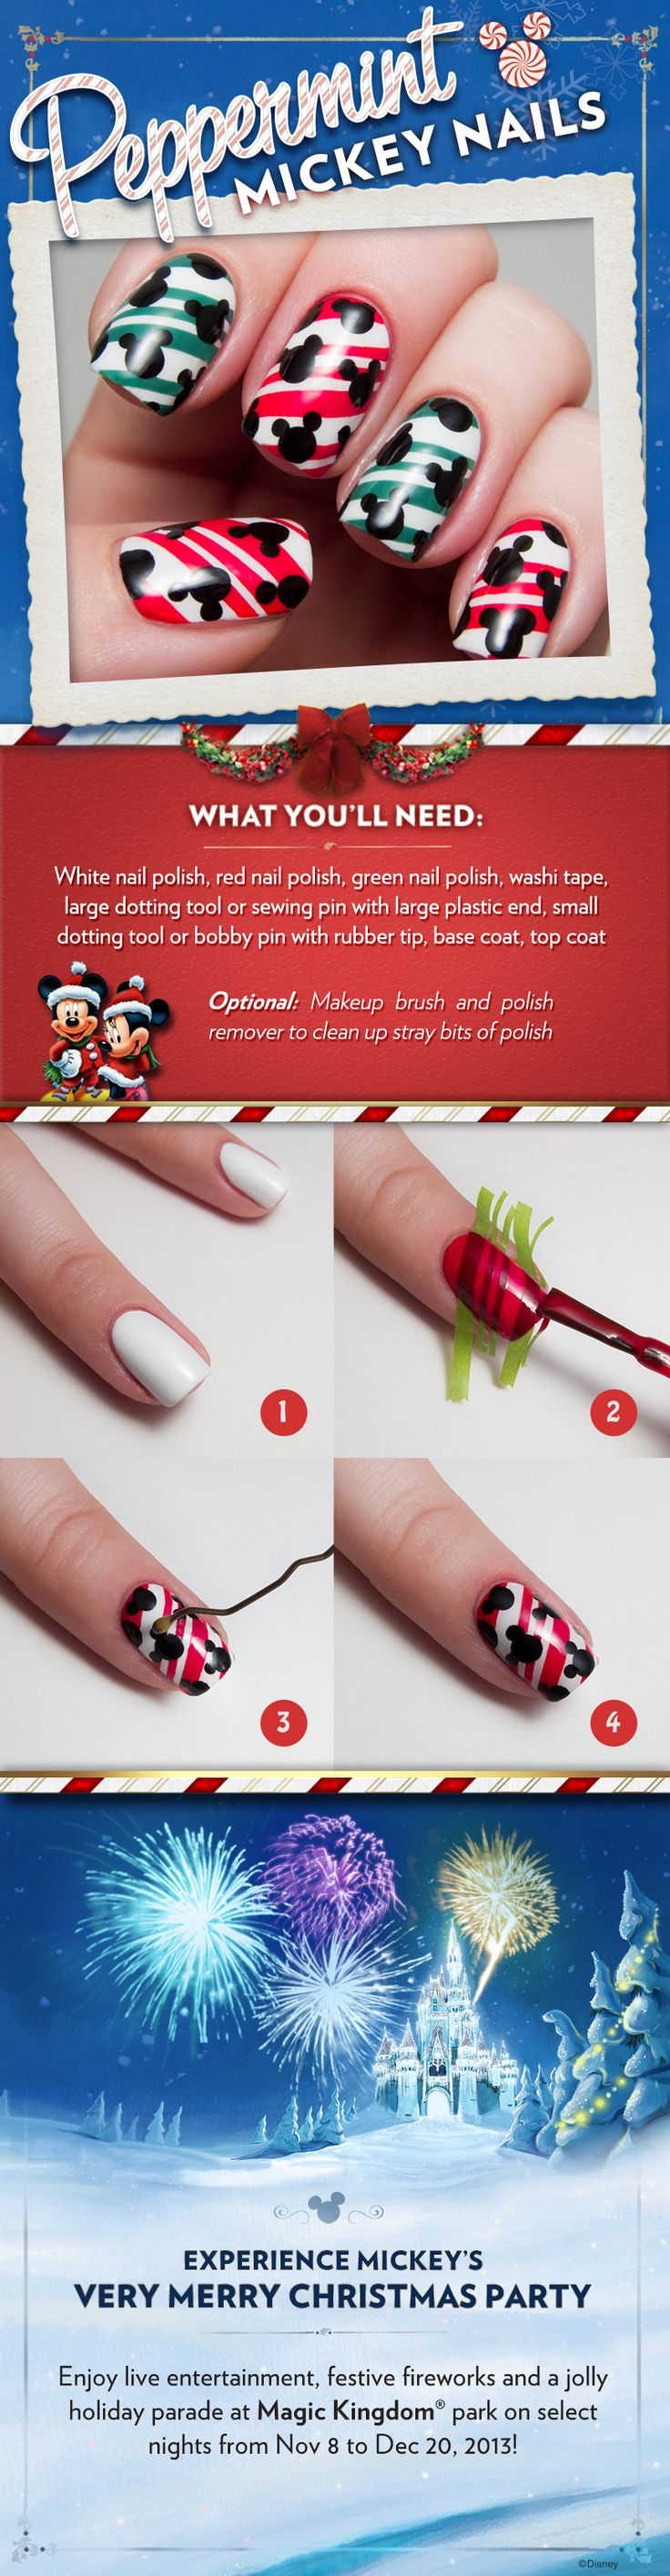 Pepperming Mickey Nails #DIY #Tutorial #WaltDisneyWorld #Christmas